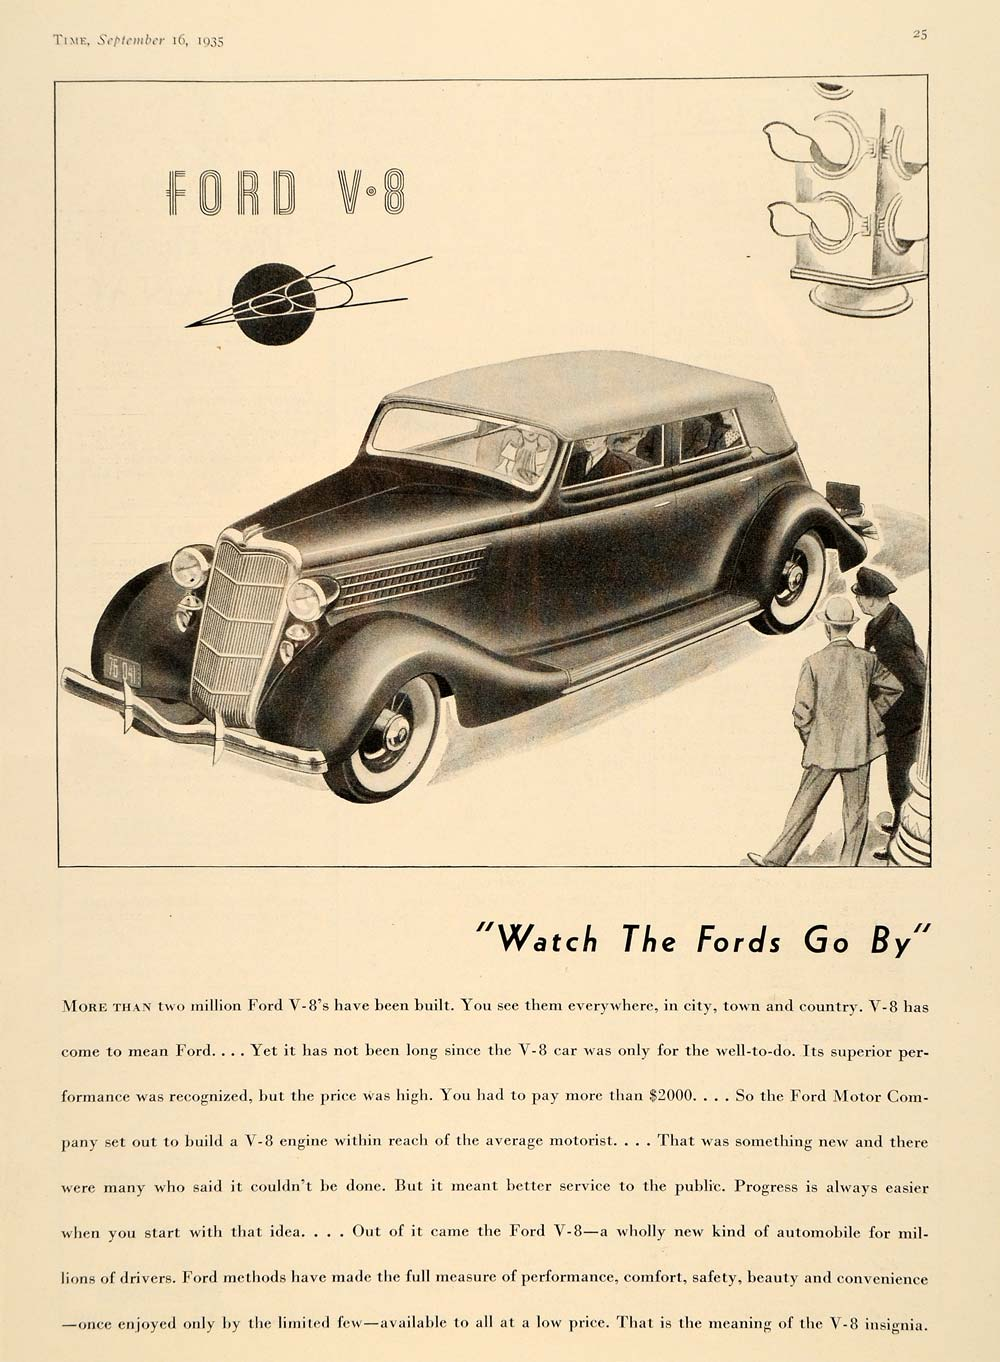 1935 Ad Vintage Ford V8 Pricing Watch the Fords Go By - ORIGINAL ADVERTISING TM7